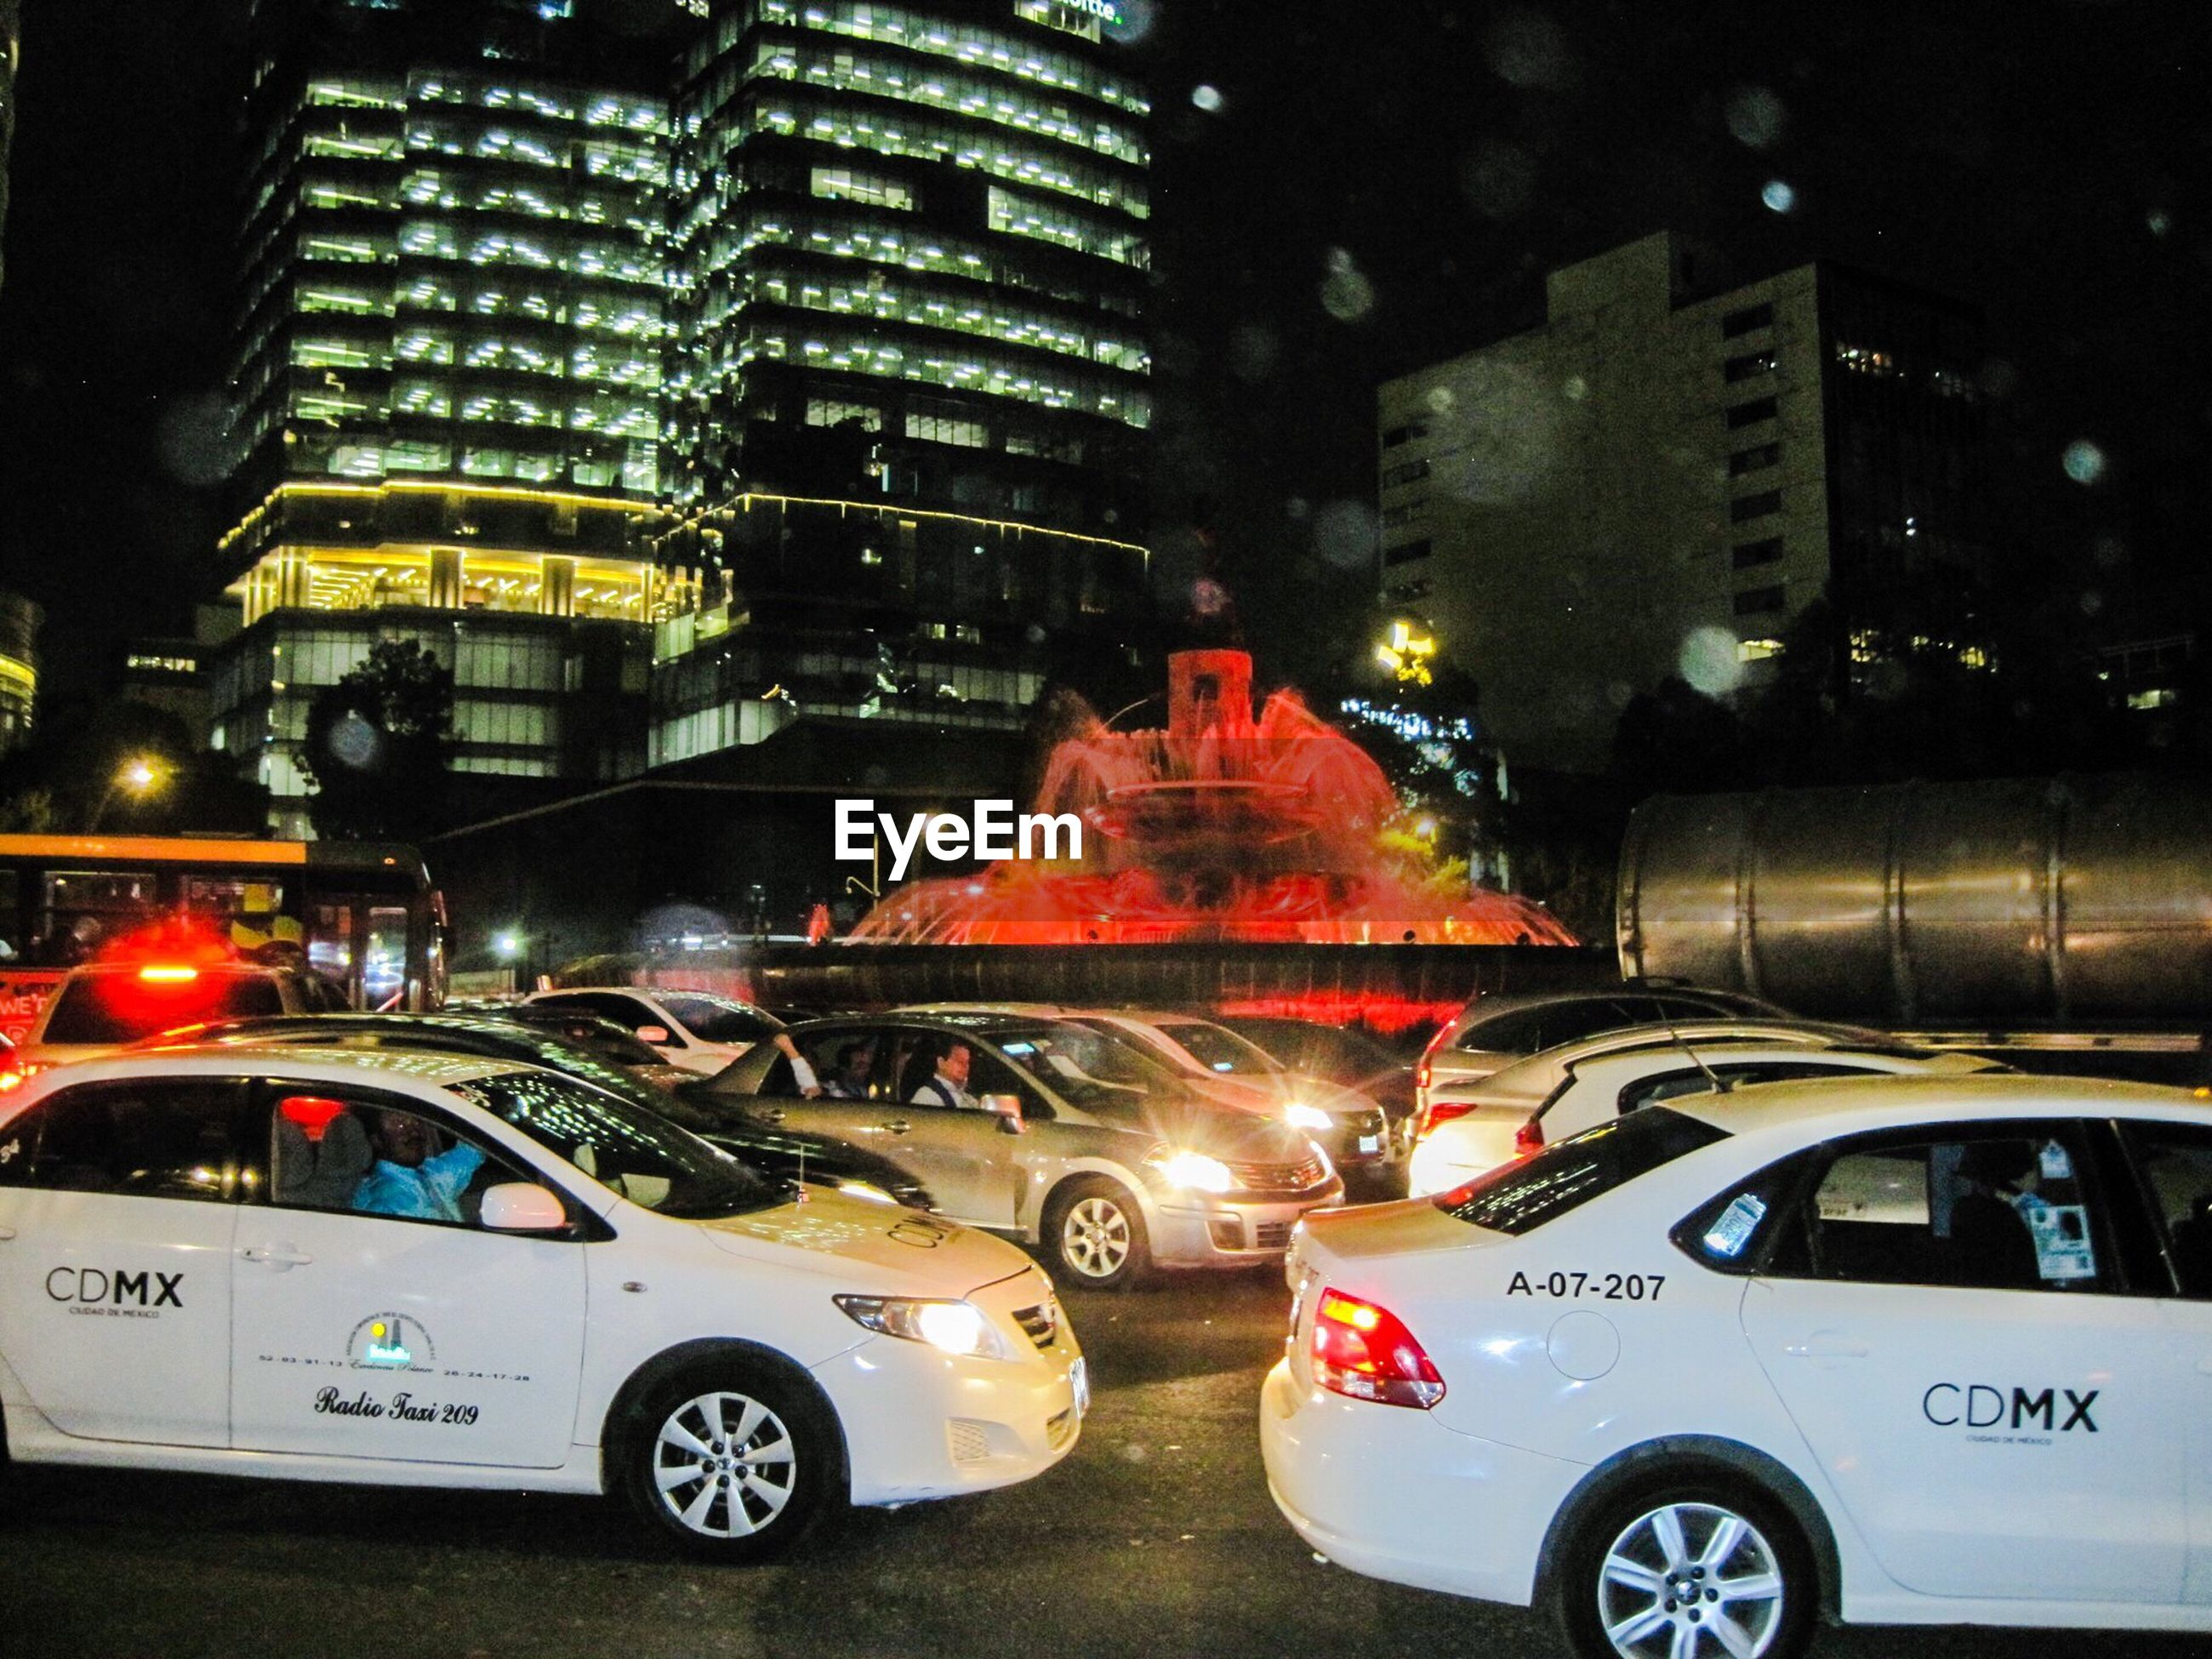 car, transportation, city, night, illuminated, taxi, mode of transport, land vehicle, traffic, city life, yellow taxi, building exterior, architecture, skyscraper, outdoors, no people, snowing, police car